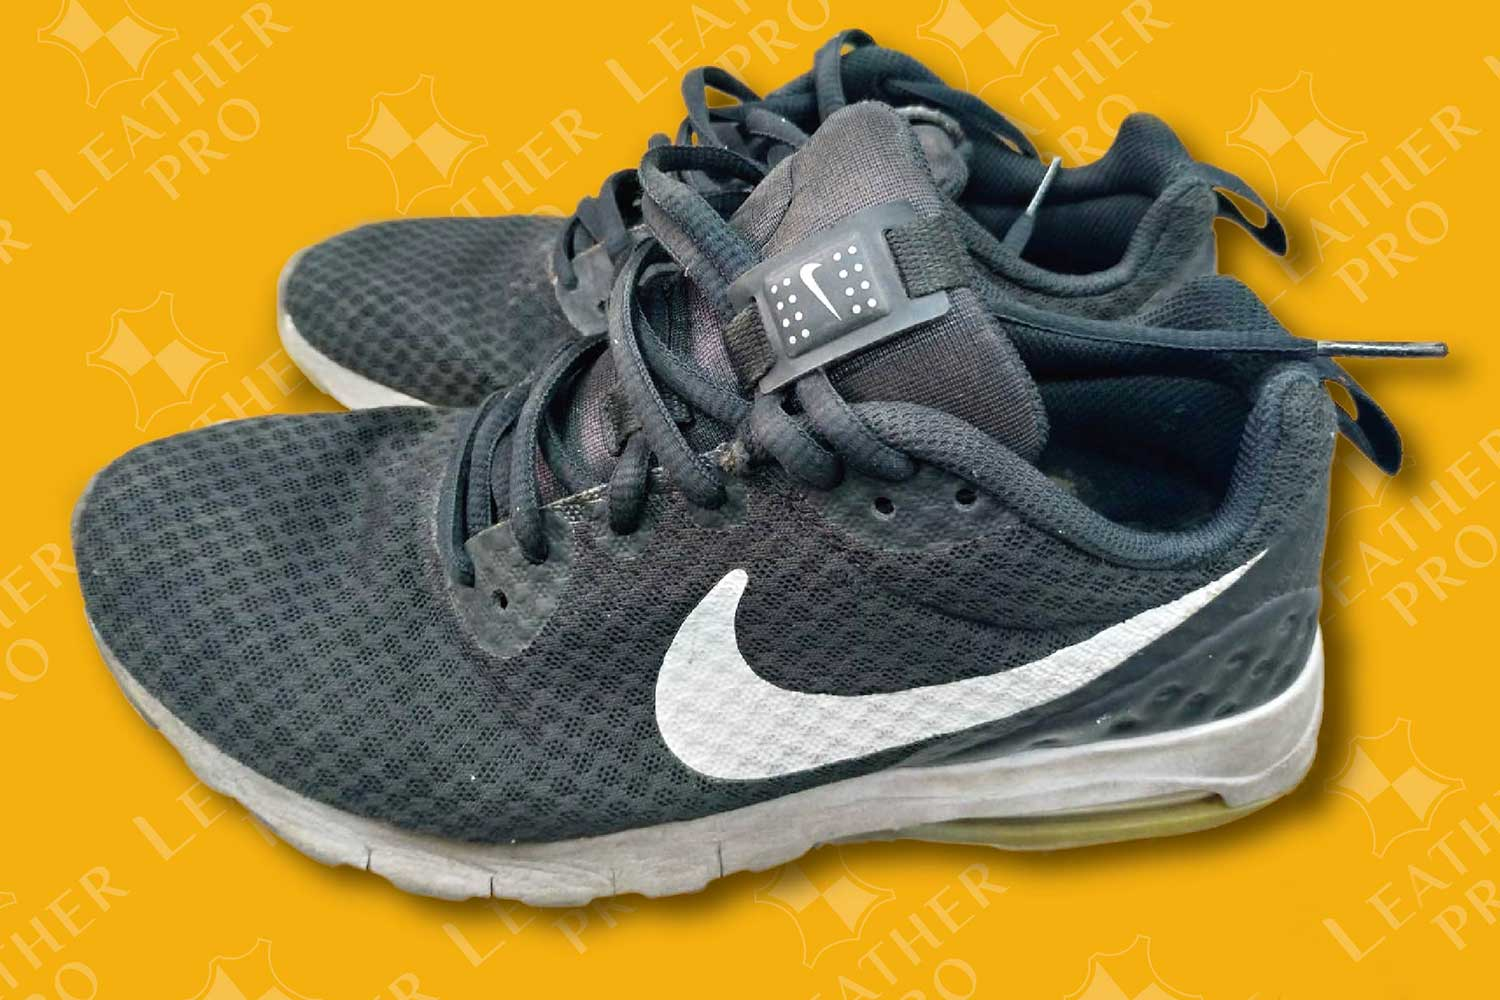 https://leather-pro.com/wp-content/uploads/2019/03/NIKE_shoes_before_1500.jpg